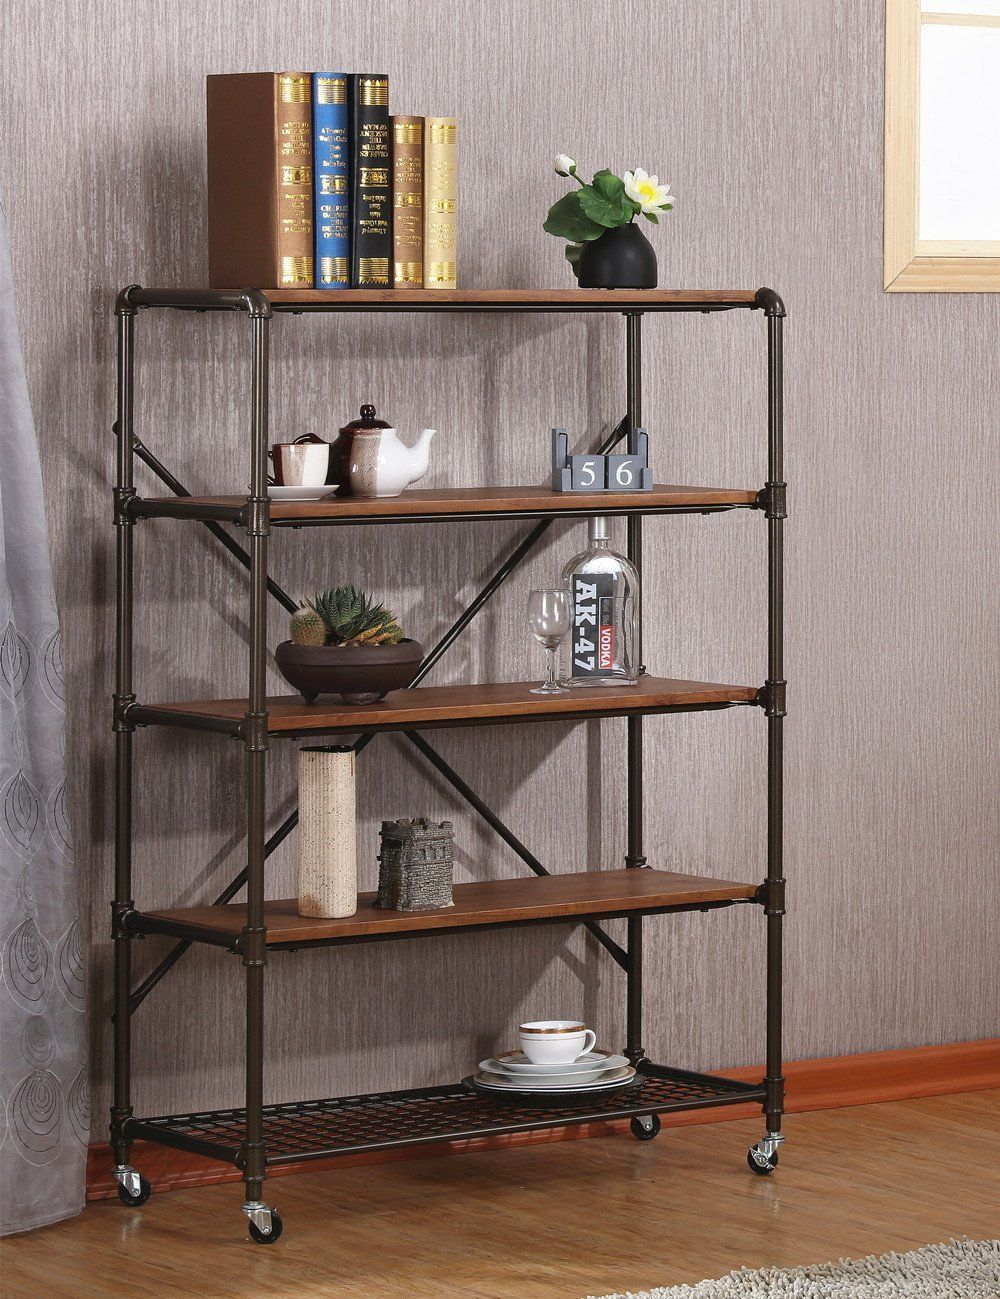 Amazon com ok furniture 5 shelf industrial bookshelf with wheels display storage rack 45 5h kitchen dining